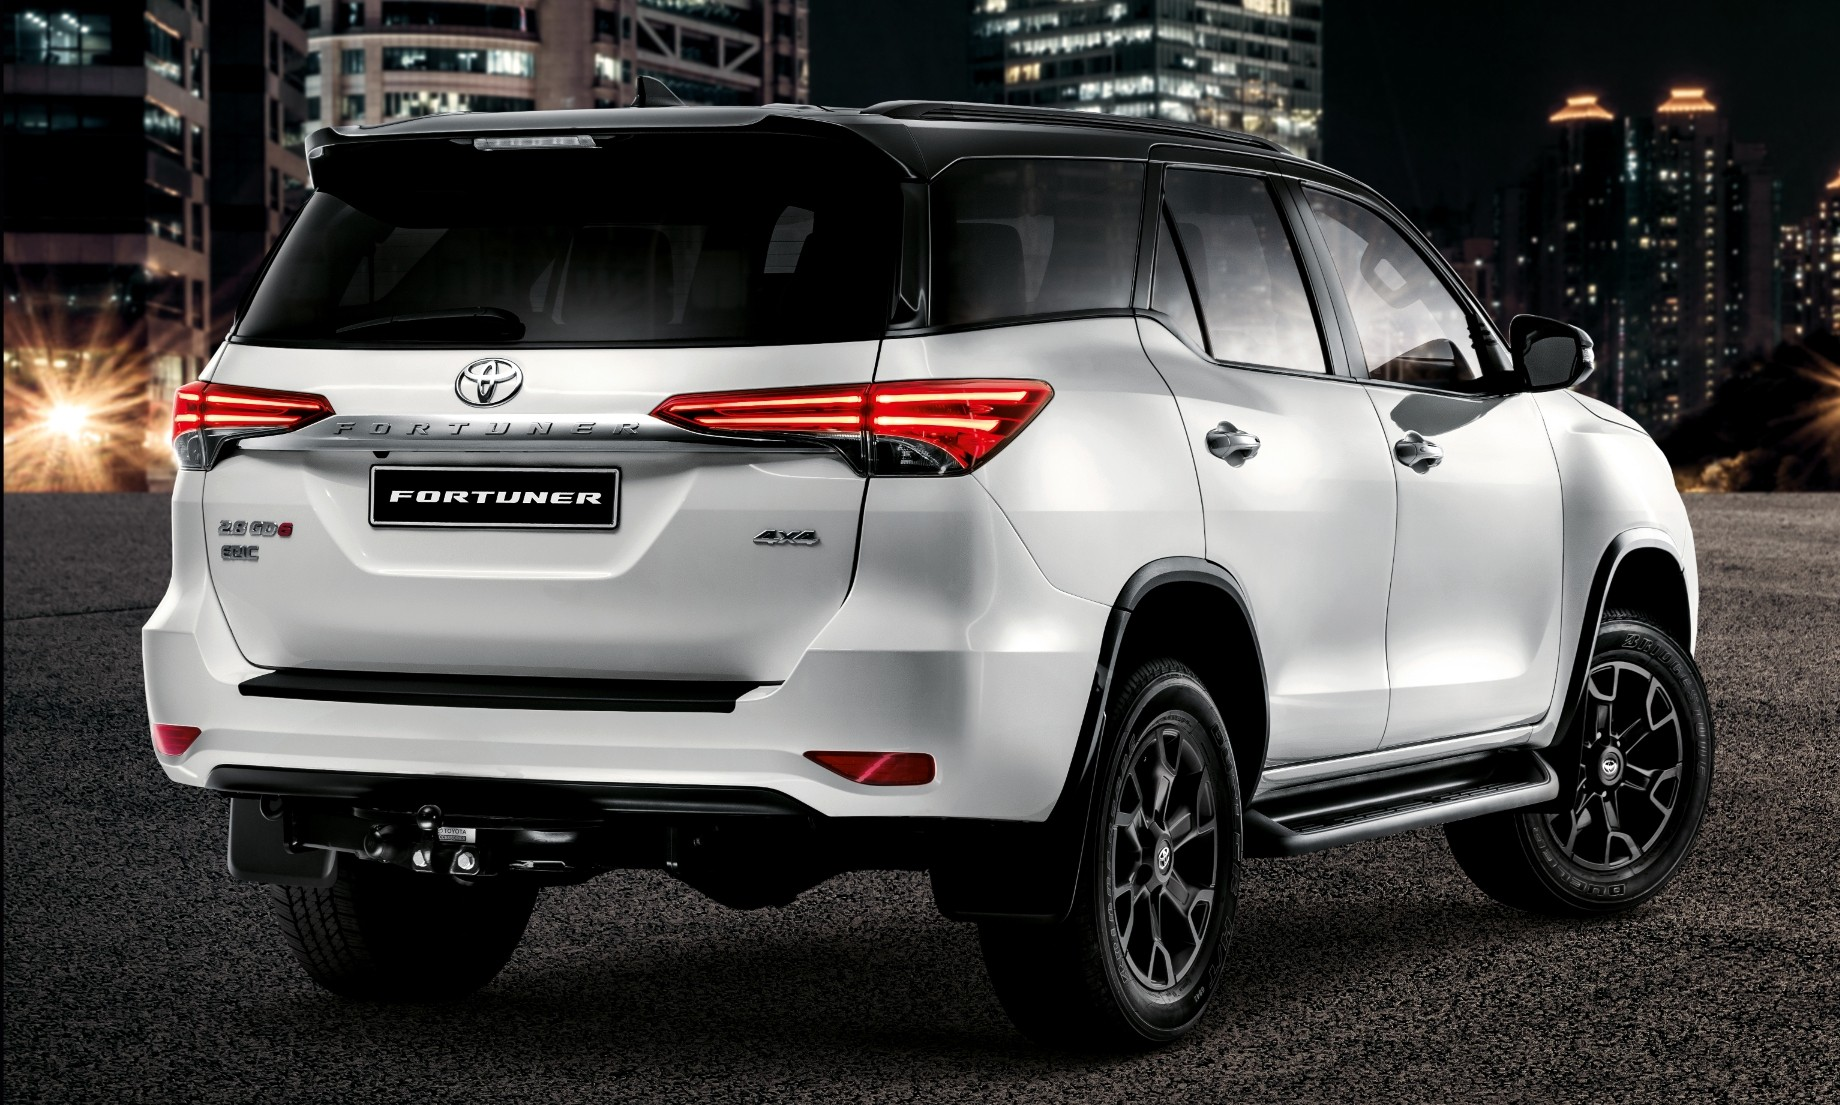 Toyota Fortuner Epic rear